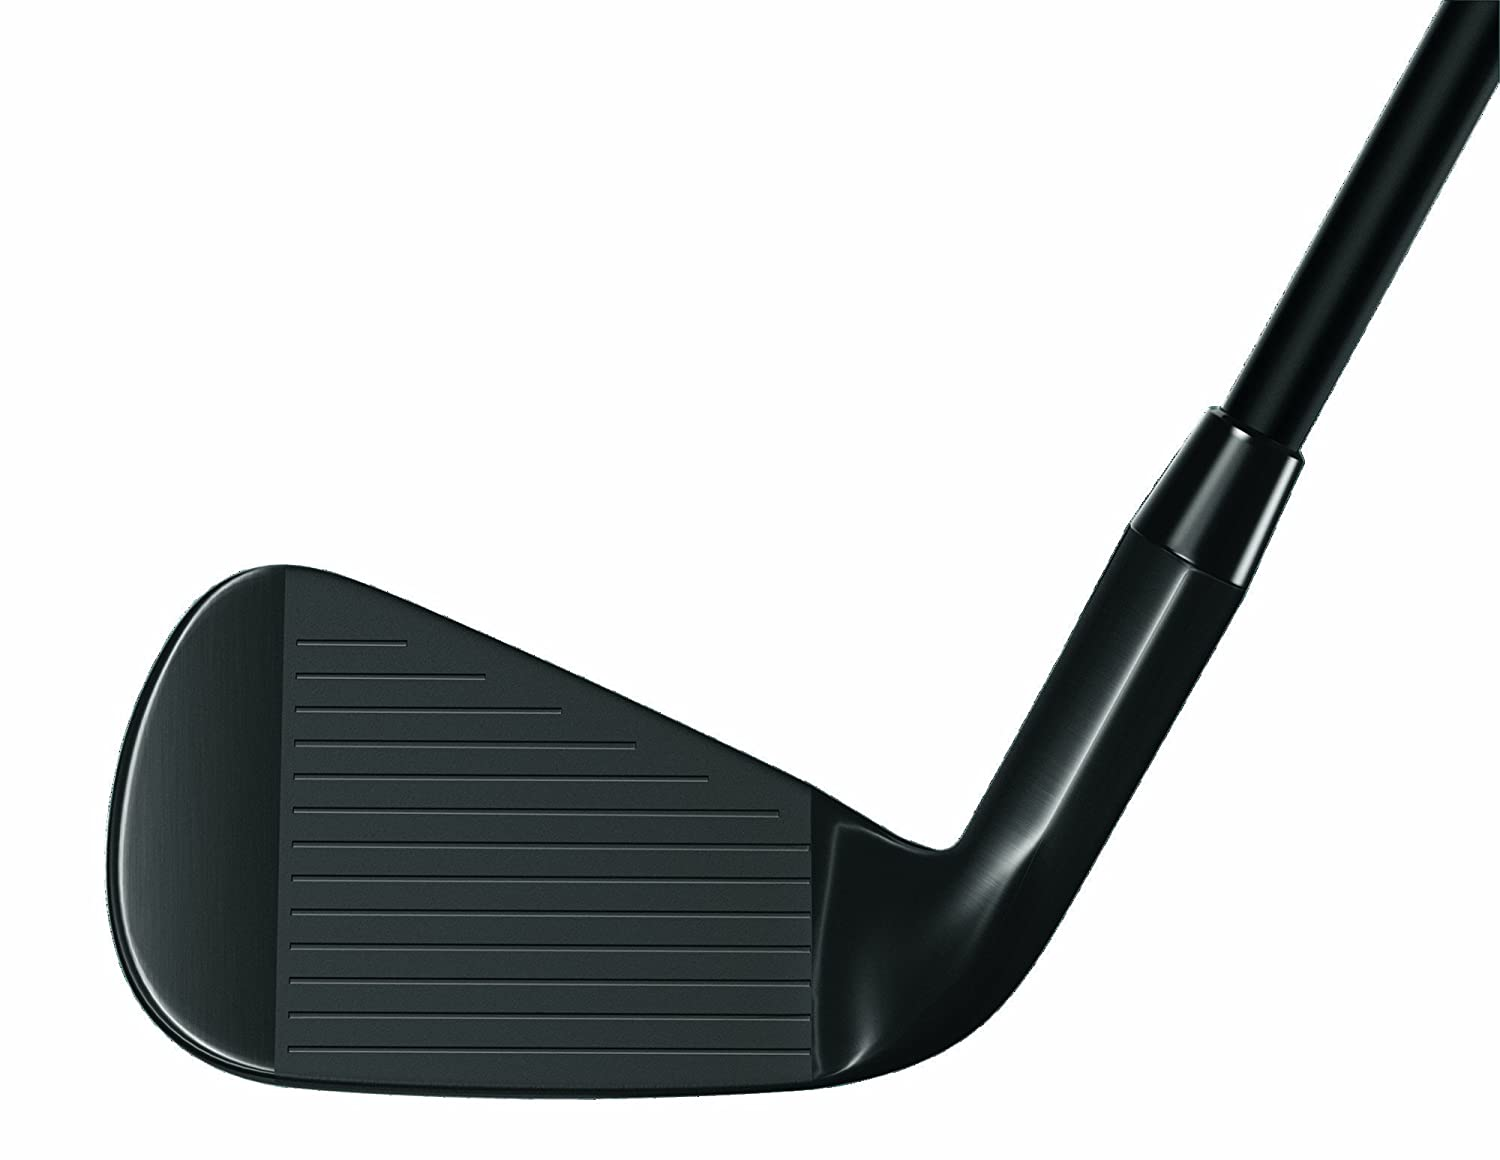 Amazon.com: Callaway RAZR X Hierro), color negro: Sports ...